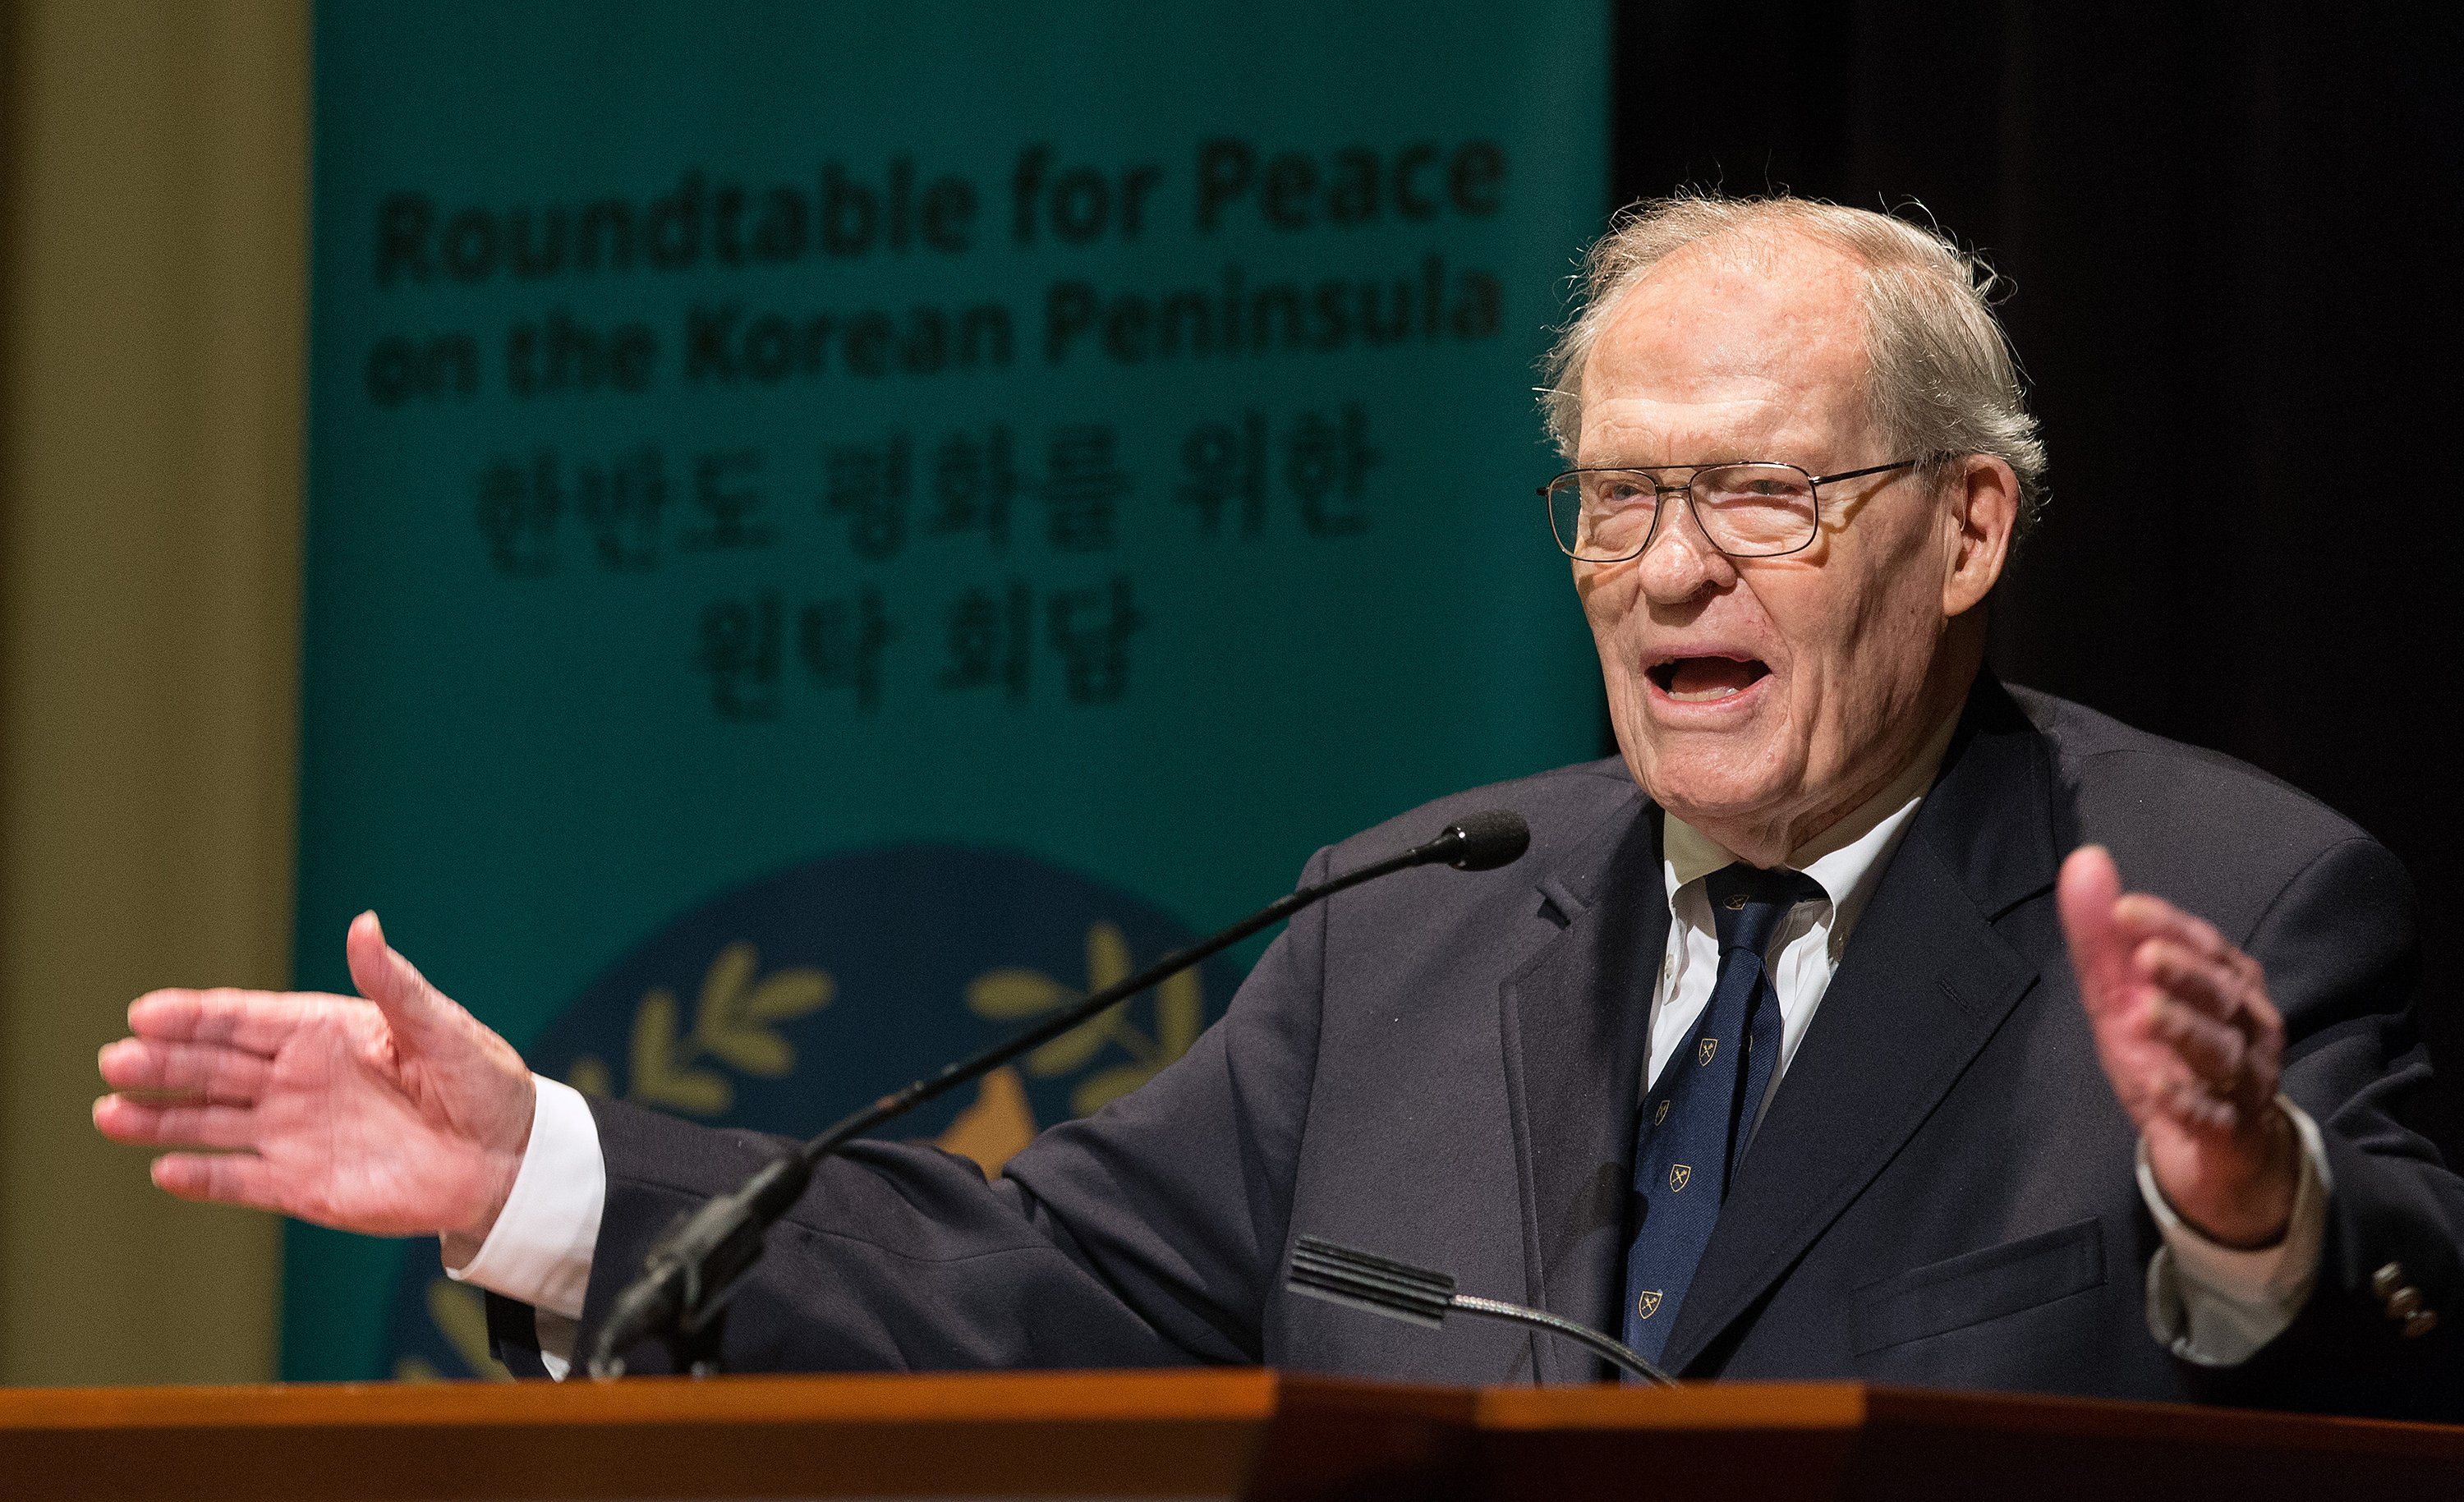 The Rev. James T. Laney speaks during the Roundtable for Peace on the Korean Peninsula in Atlanta. Laney is former U.S. Ambassador to South Korea and former dean of the Candler School of Theology. Photo by Mike DuBose, UMNS.